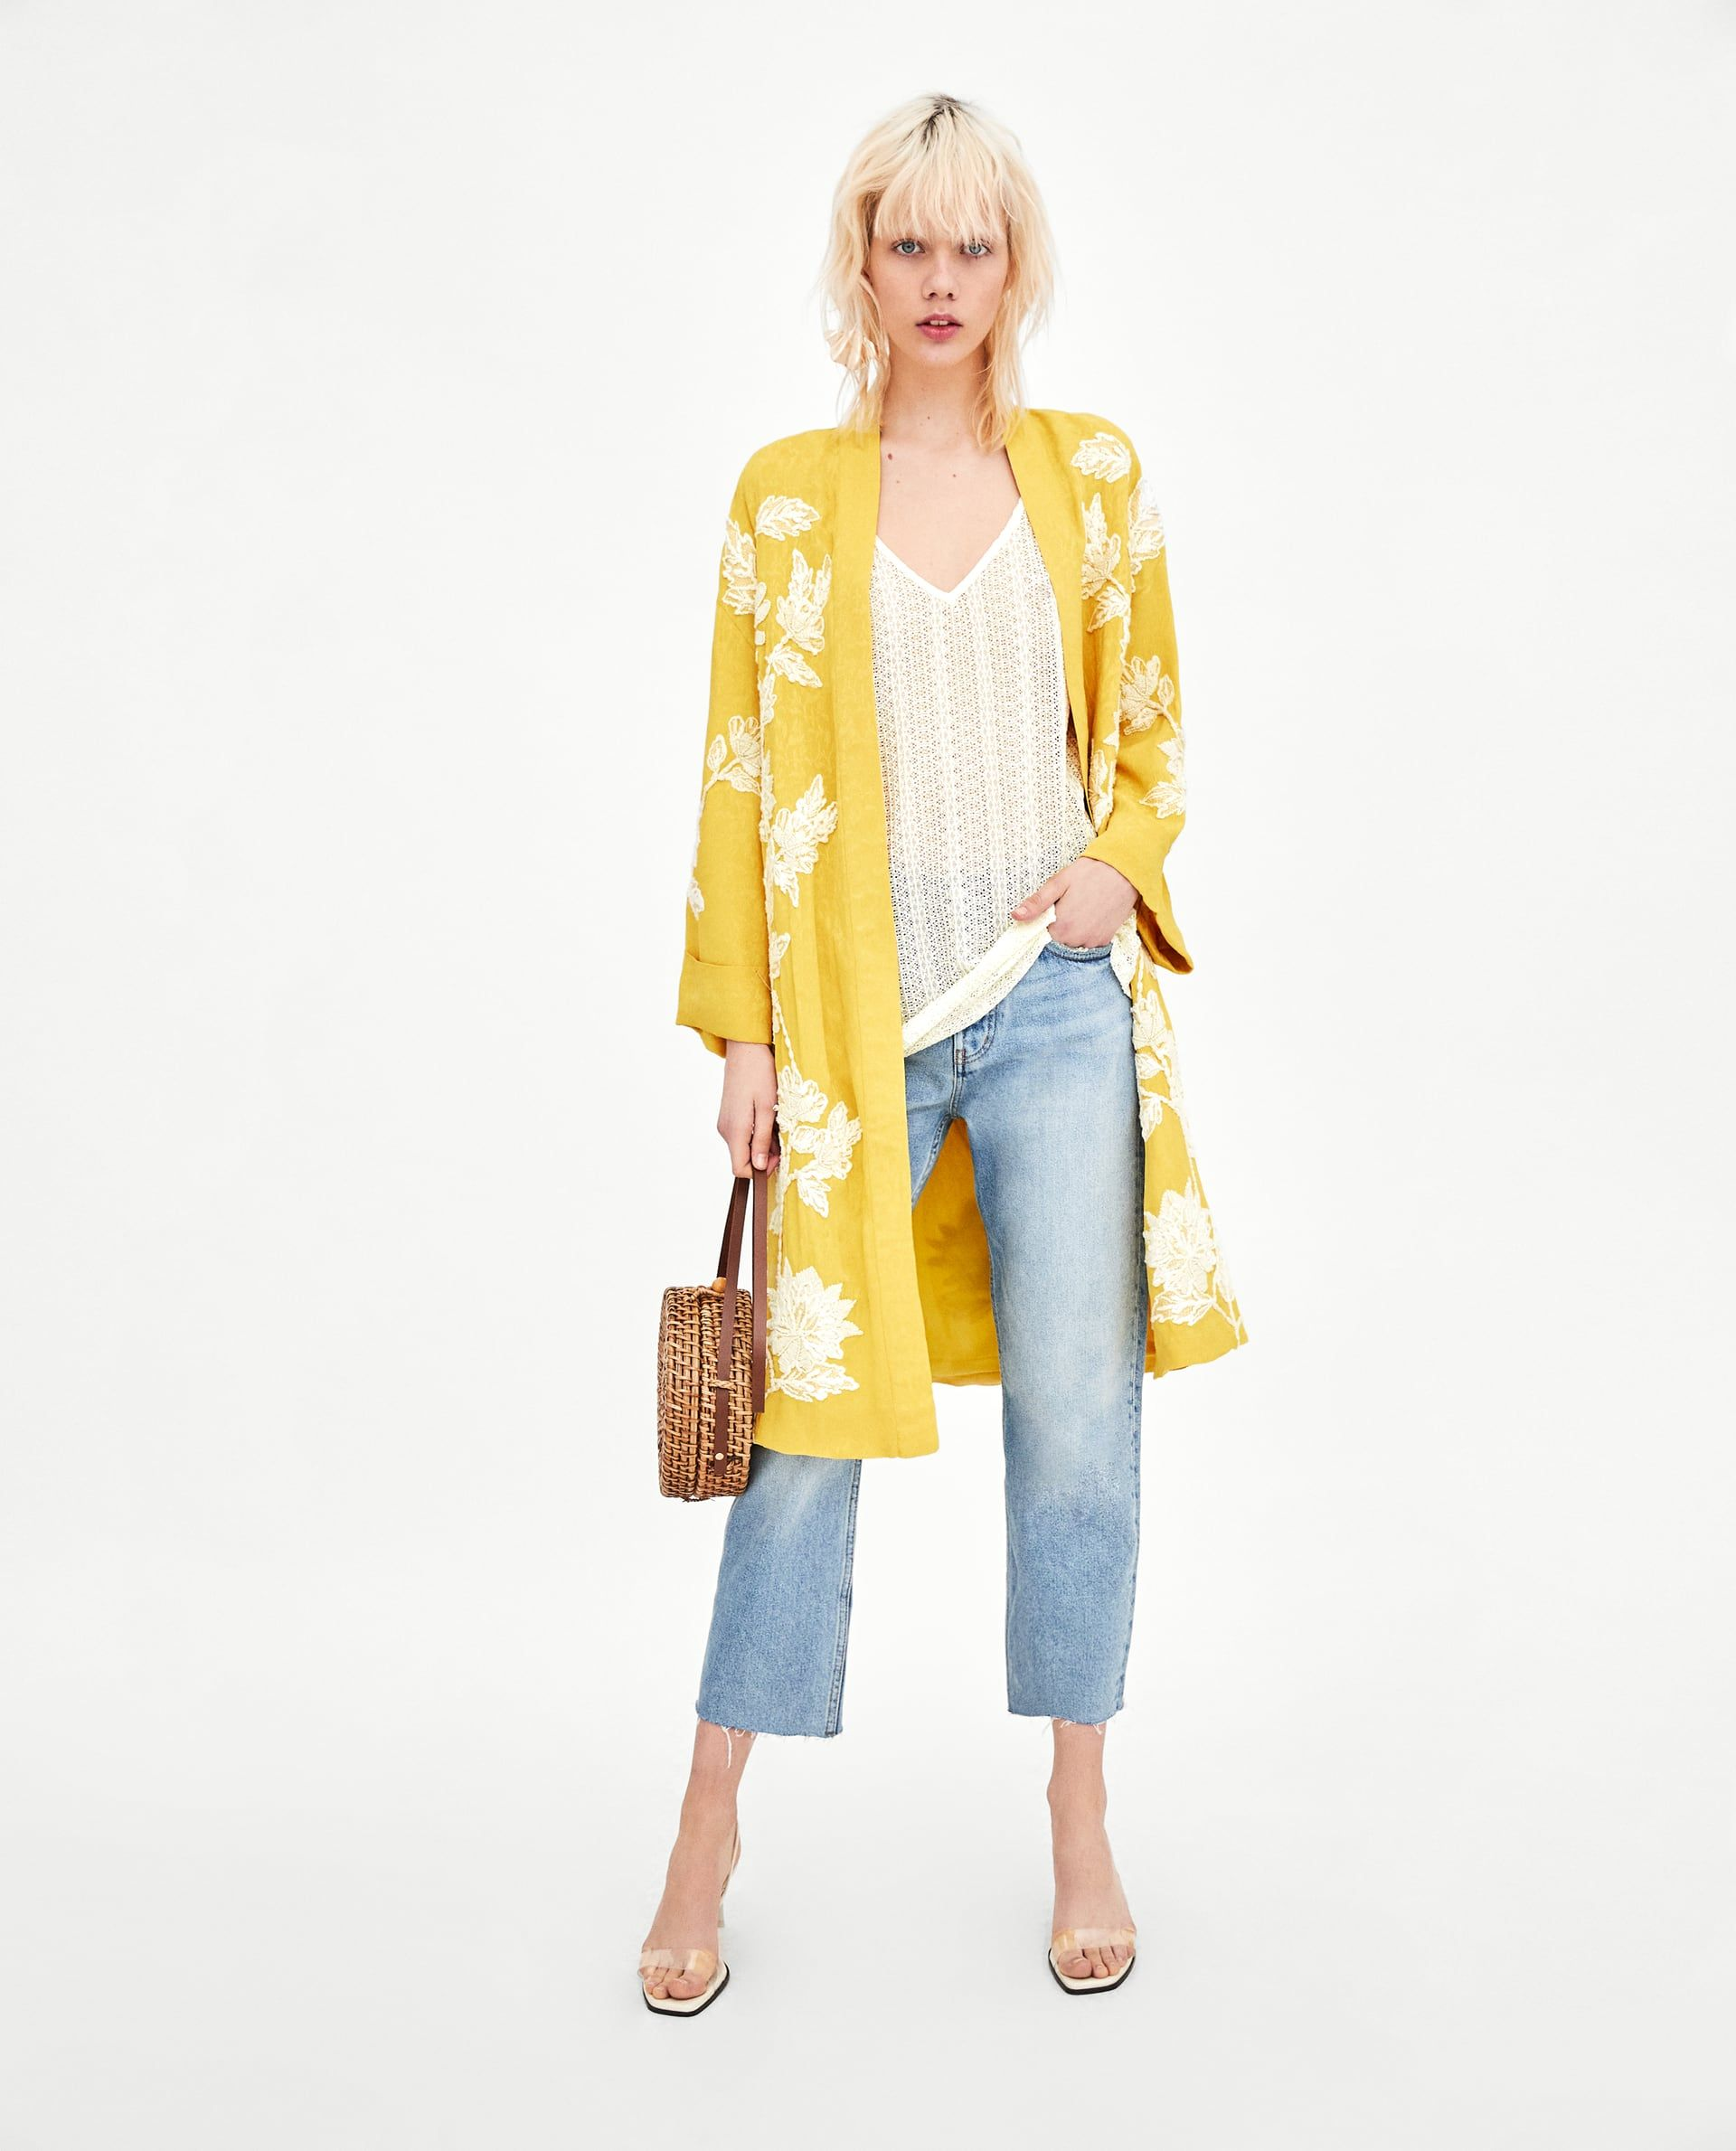 ec4c39e708 We love a touch of yellow for Spring/Summer and this Zara Kimono is  perfect:) #welove #summer #fashion